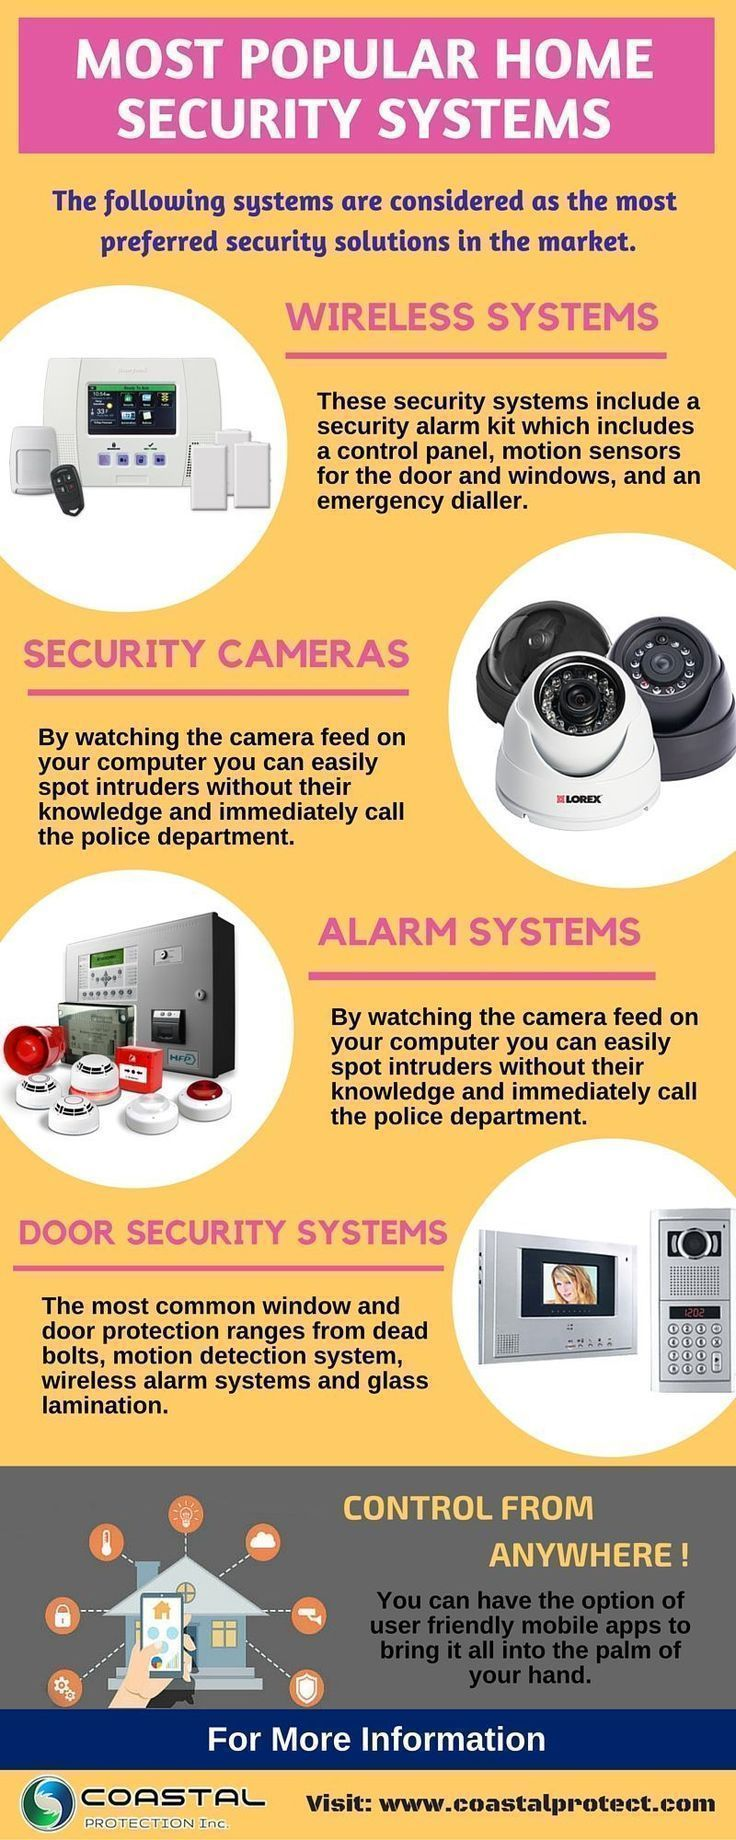 cute home protection ideas. 79 best DIY Home Security images on Pinterest  Diy home security Safety and Good ideas